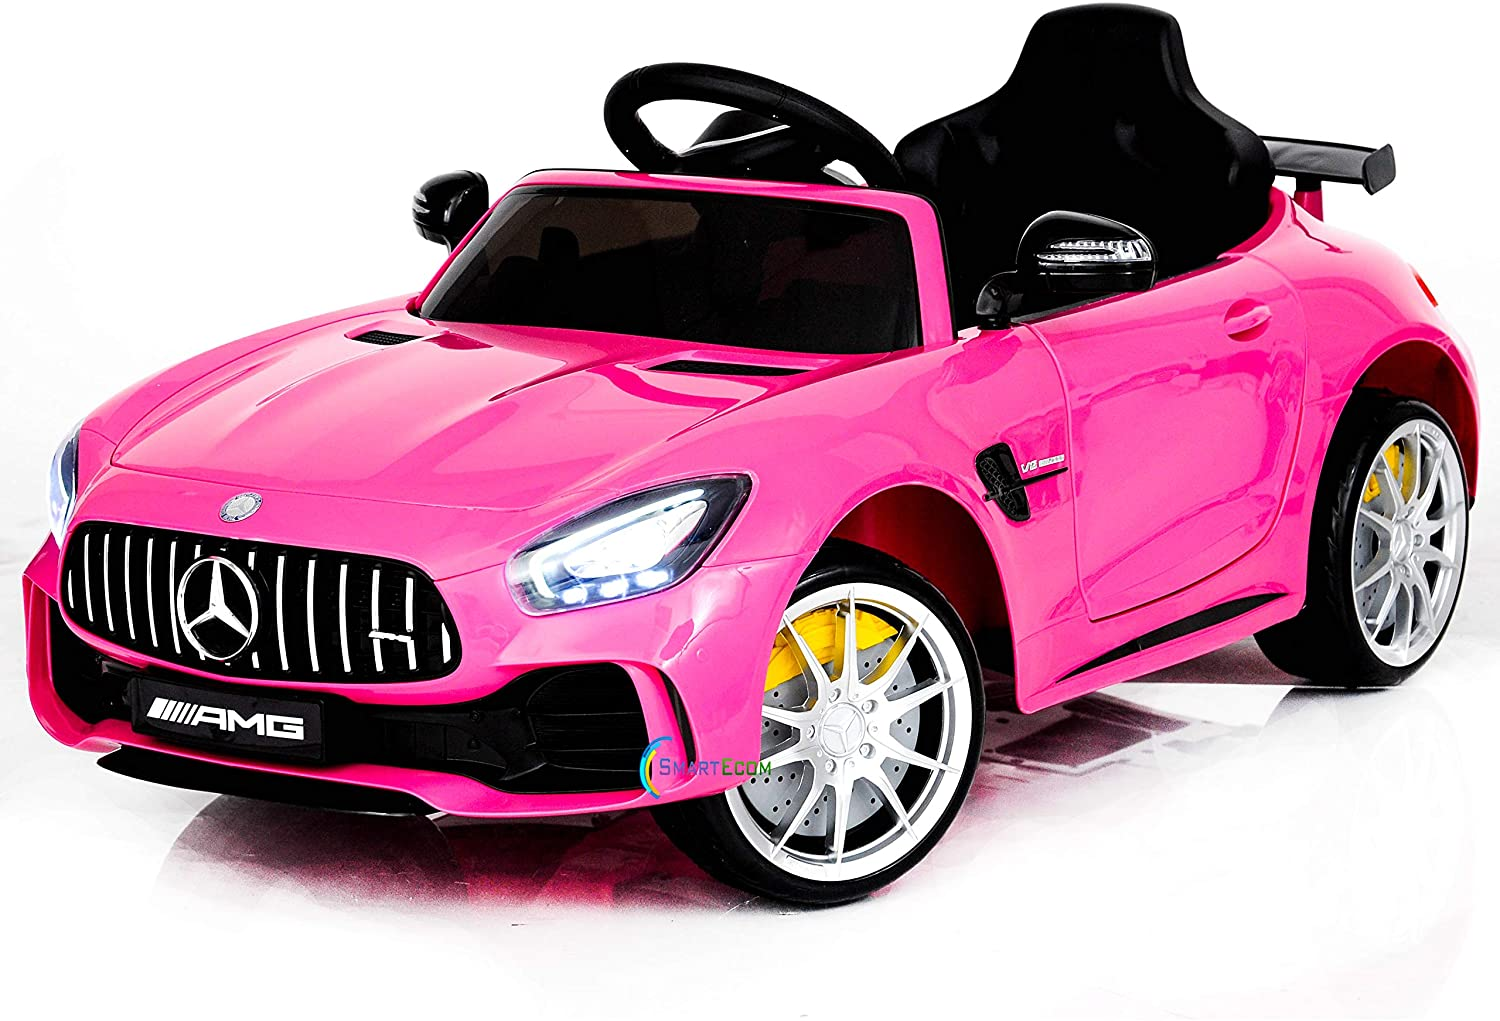 Ride On Car 12V Mercedes - Ride On Toys - Battery Powered Electric Car for Baby - with Parental Remote Control - Kids Ride in Car w/Spoiler Mercedes GTR MP3 Plastic Wheels Horn Pink